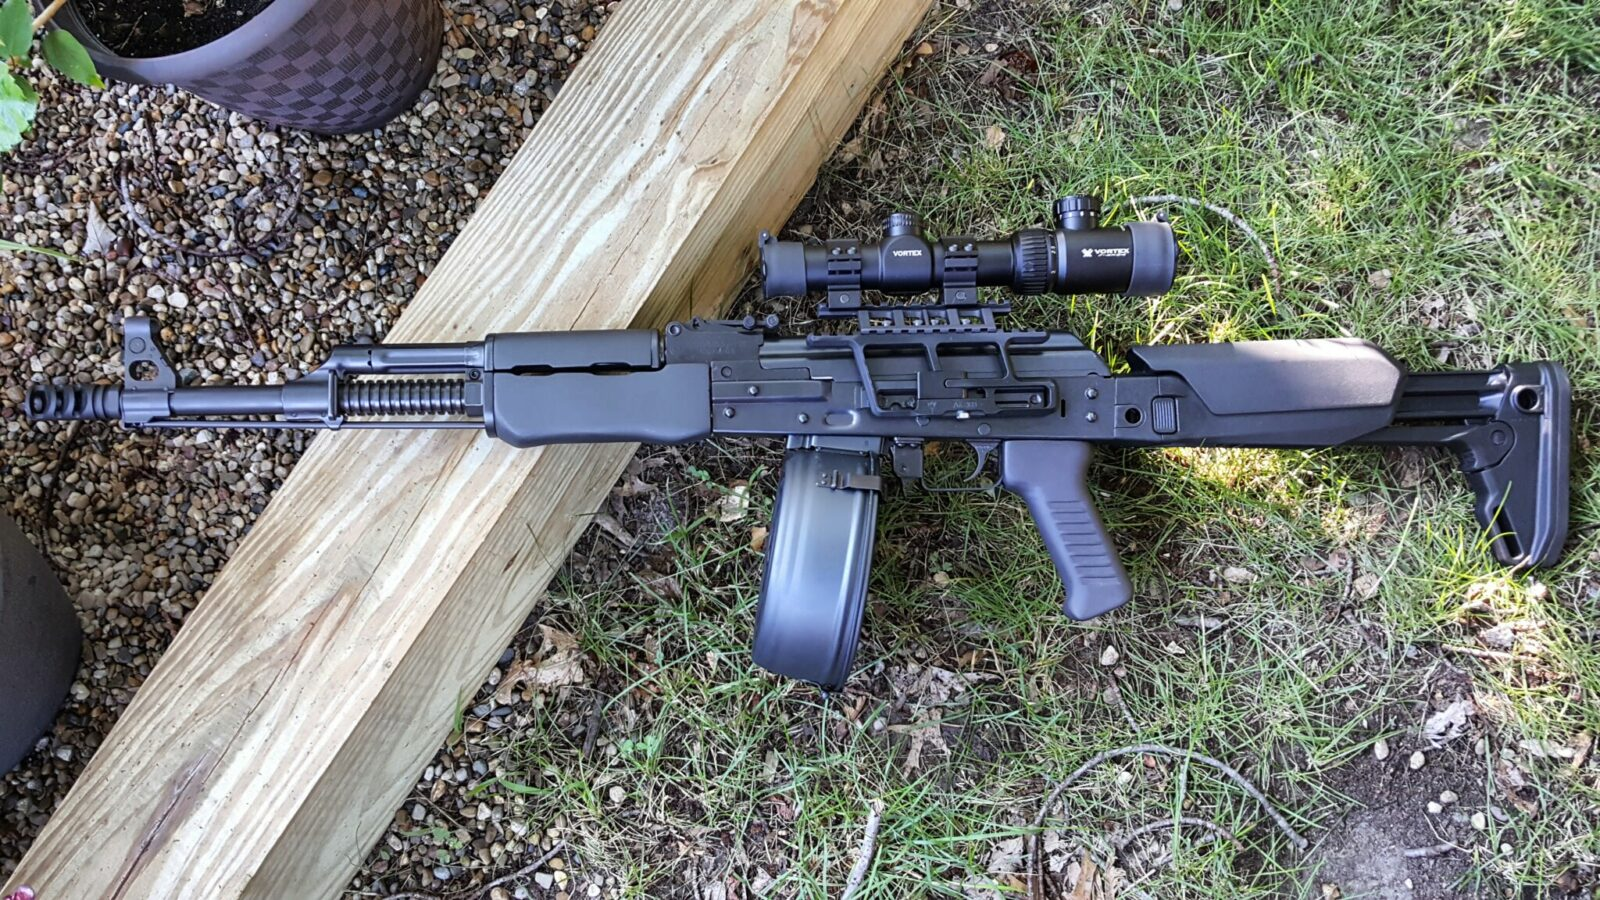 Custom Built Yugo M72B1 Carbine By Two Rivers Arms - Ronin's